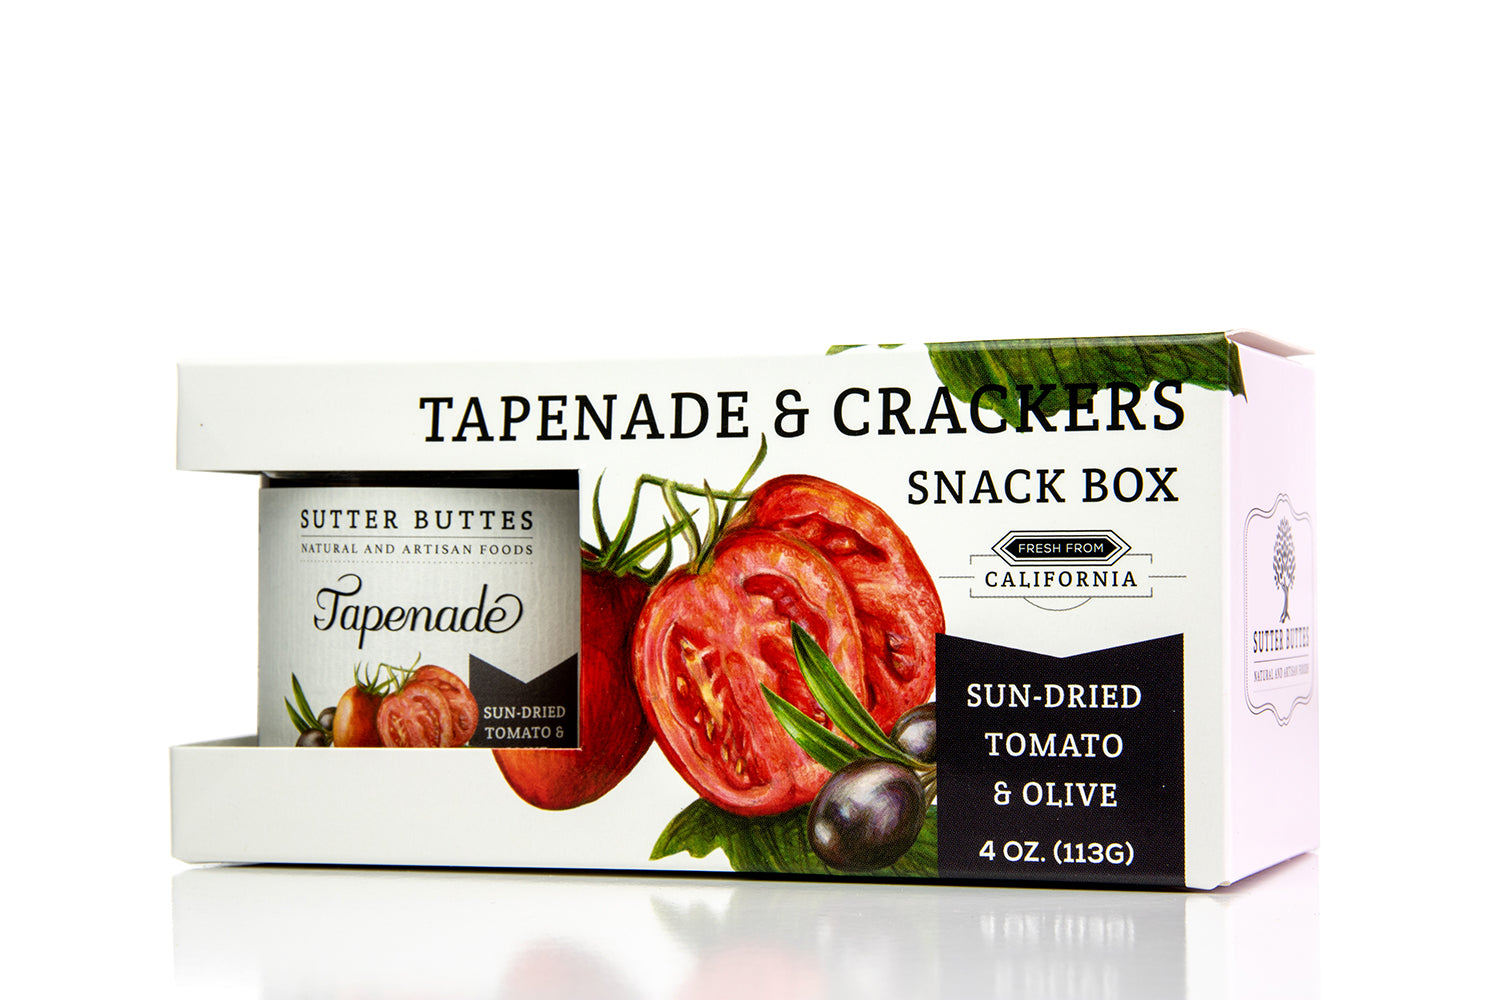 Sun-Dried Tomato Snack Box